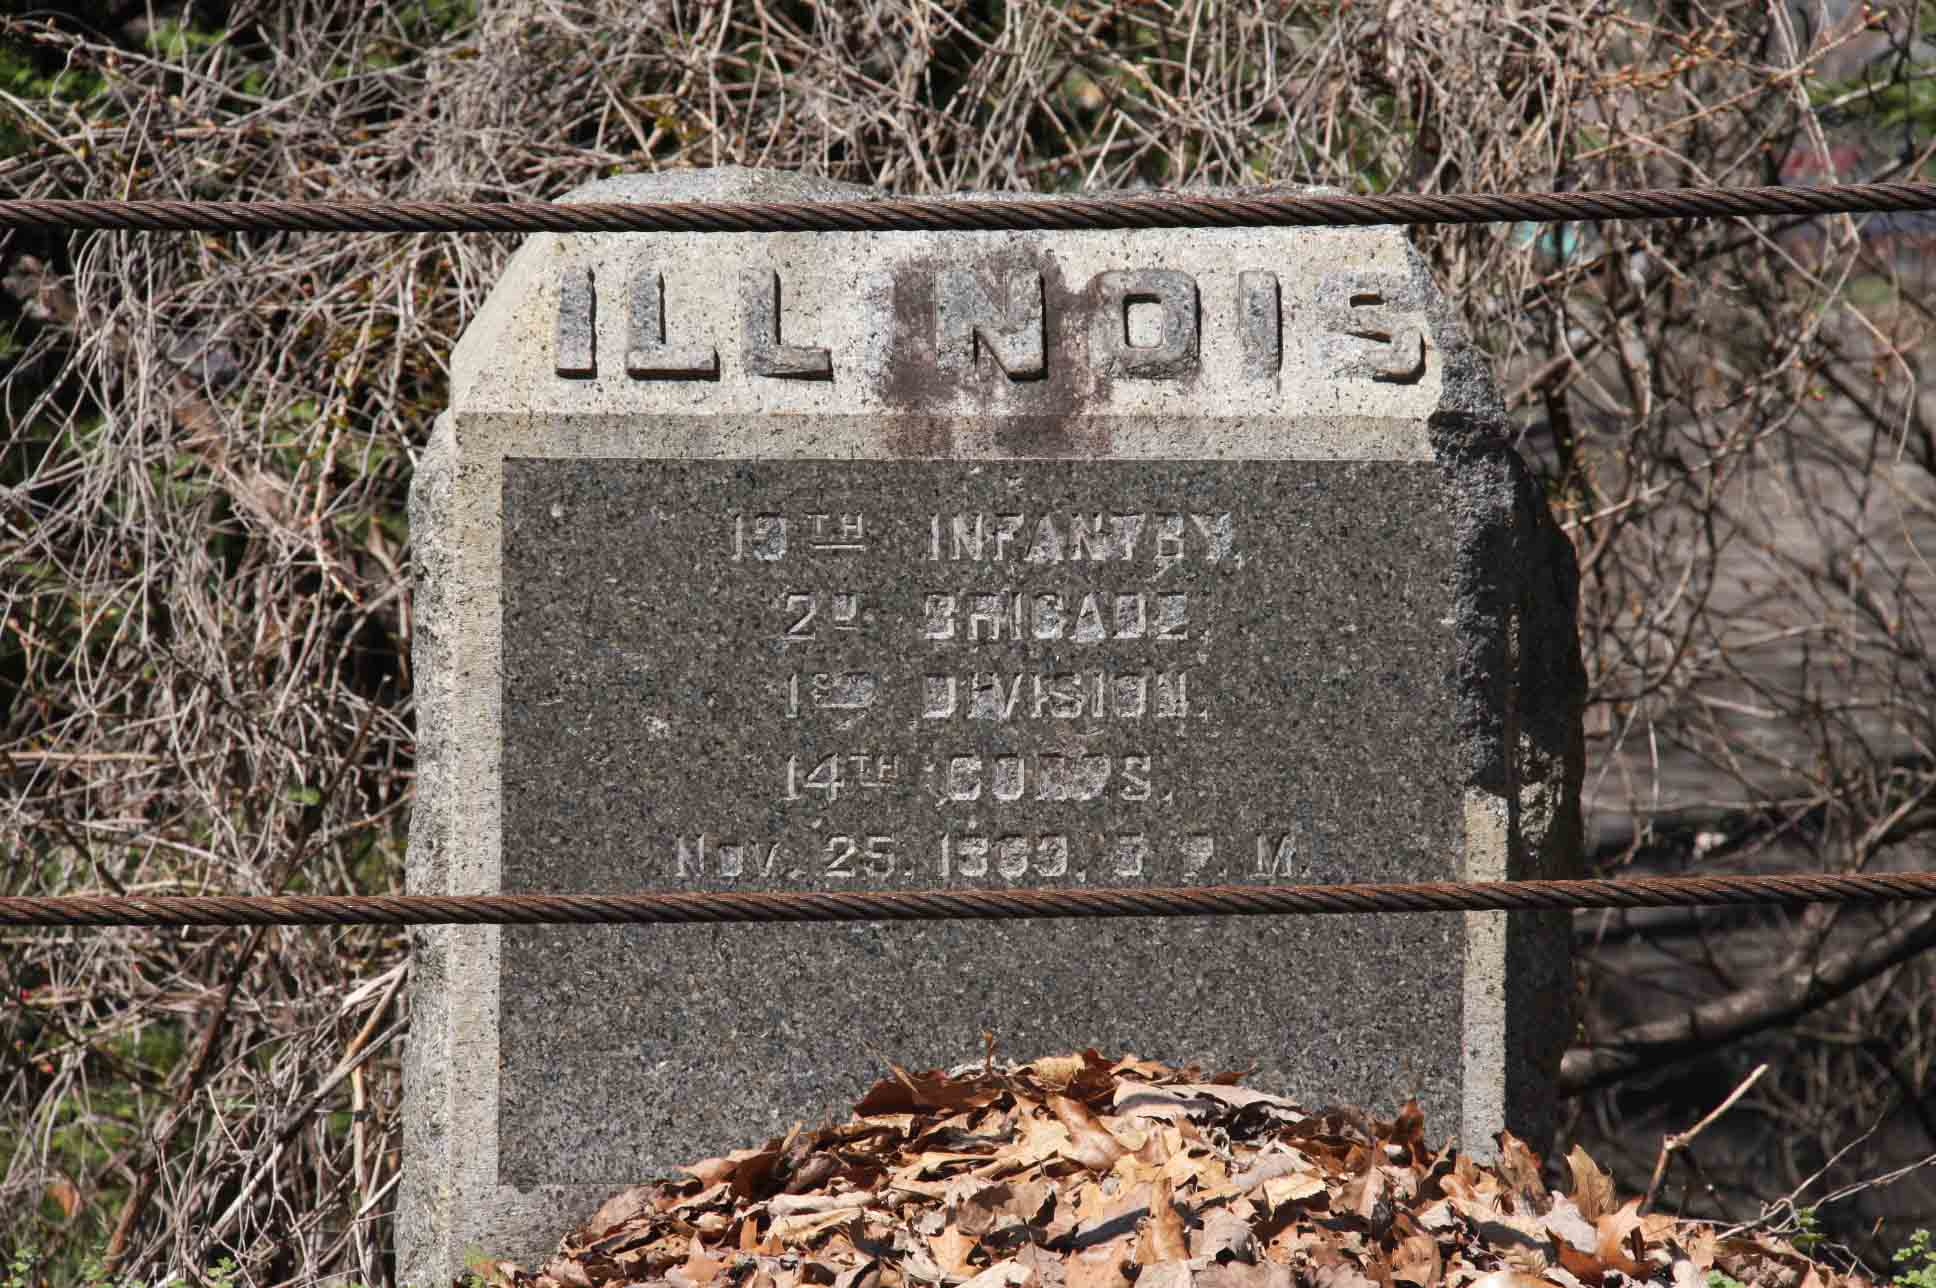 19th Illinois Infantry Regiment Marker, click photo to enlarge.